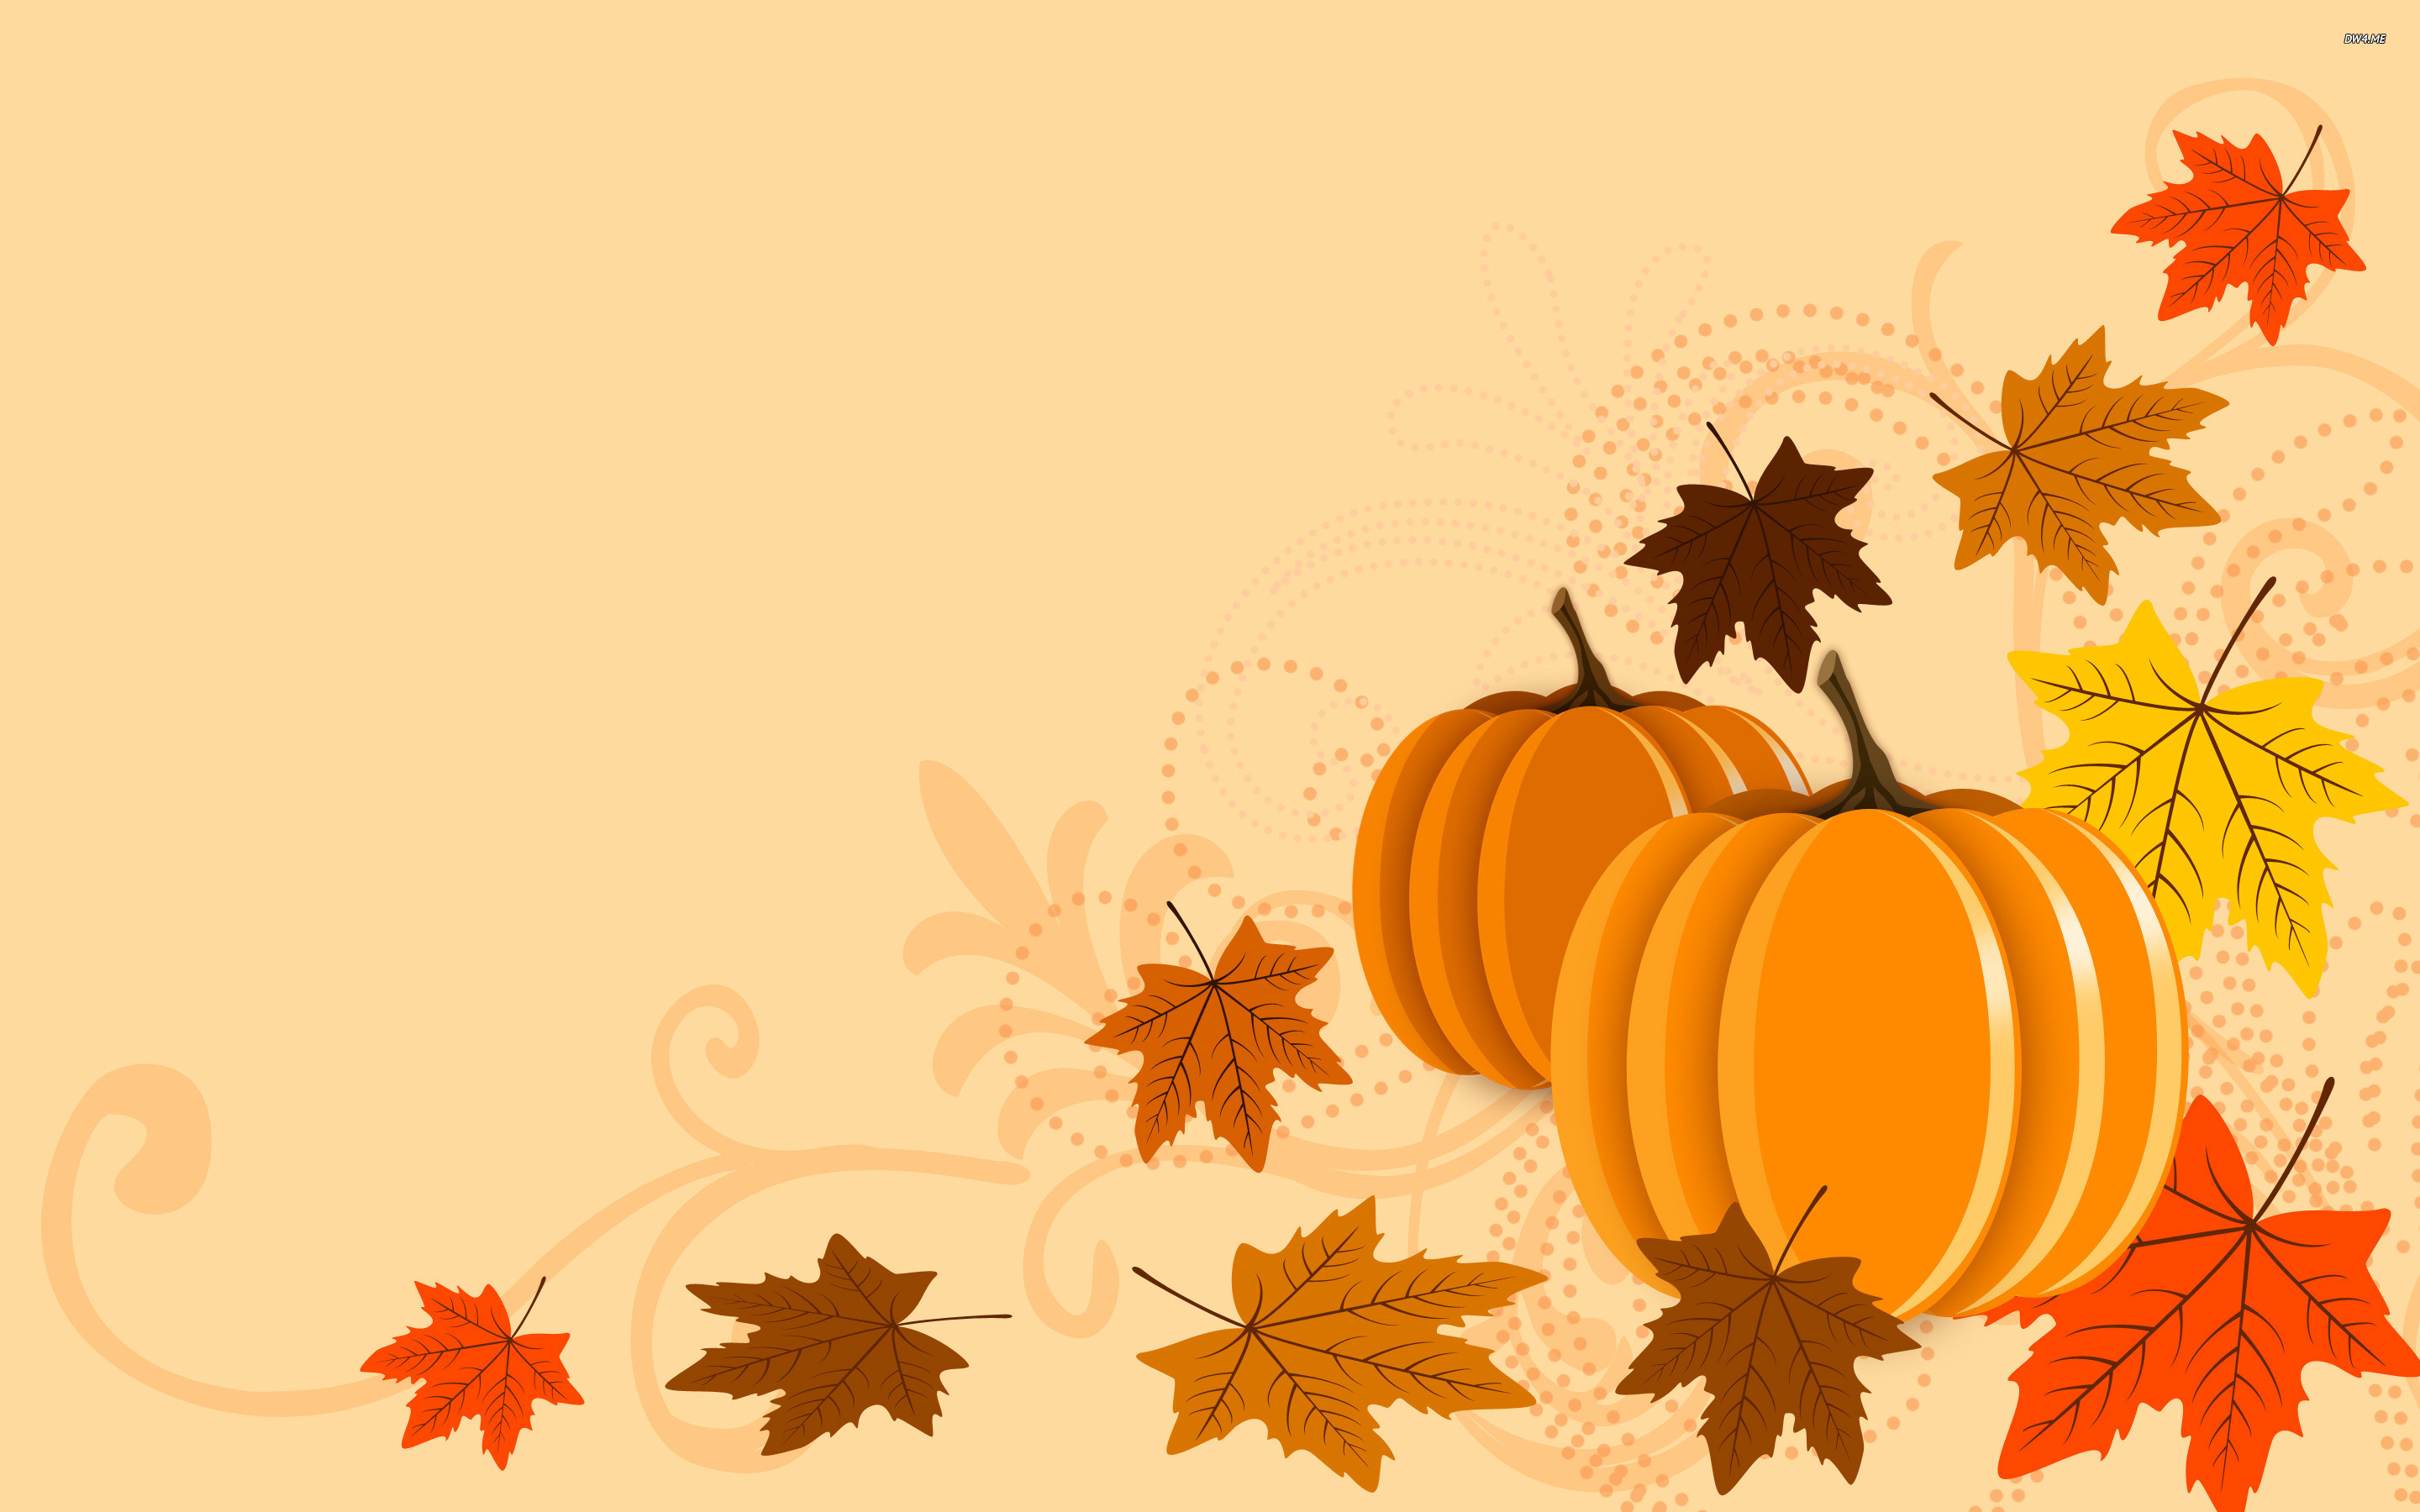 Pumpkins and leaves wallpaper – 1009263